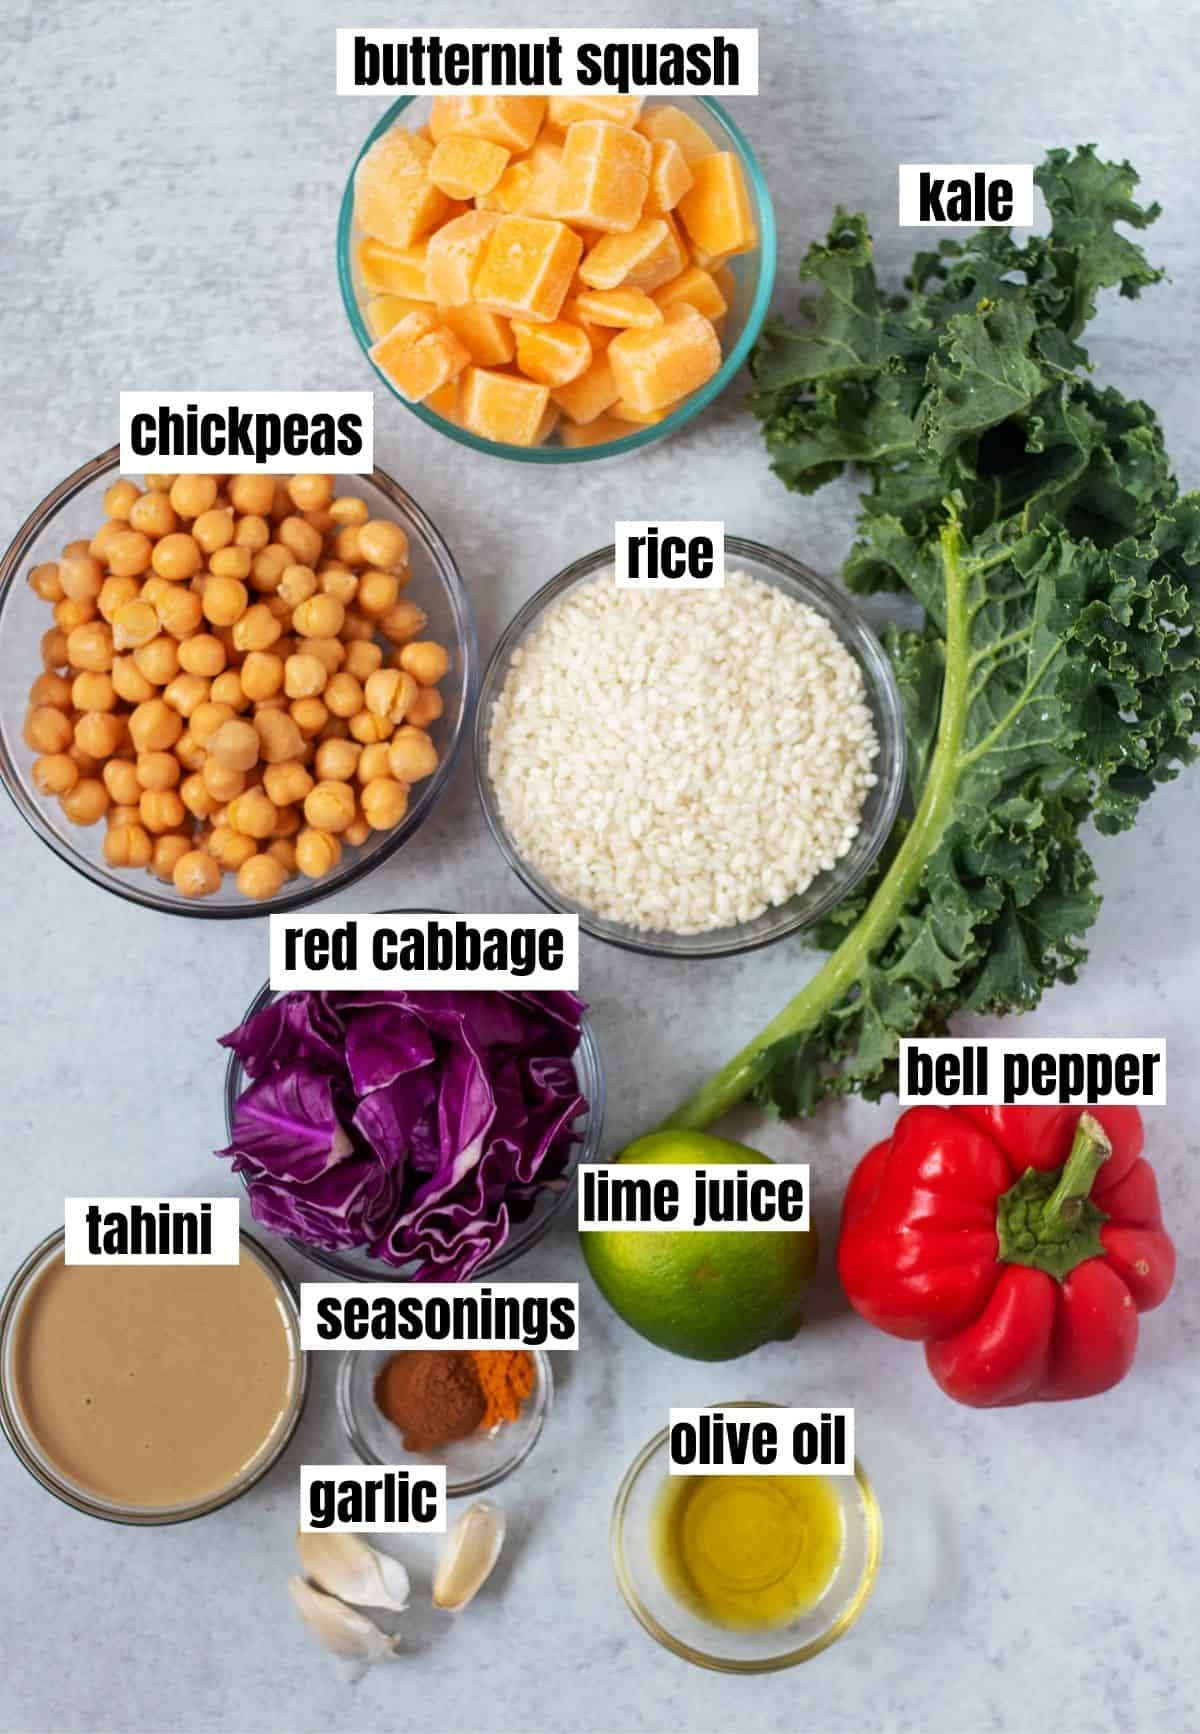 butternut squash, kale, chickpeas, rice, red cabbage, lime juice, red bell pepper, tahini, seasonings, olive oil and garlic